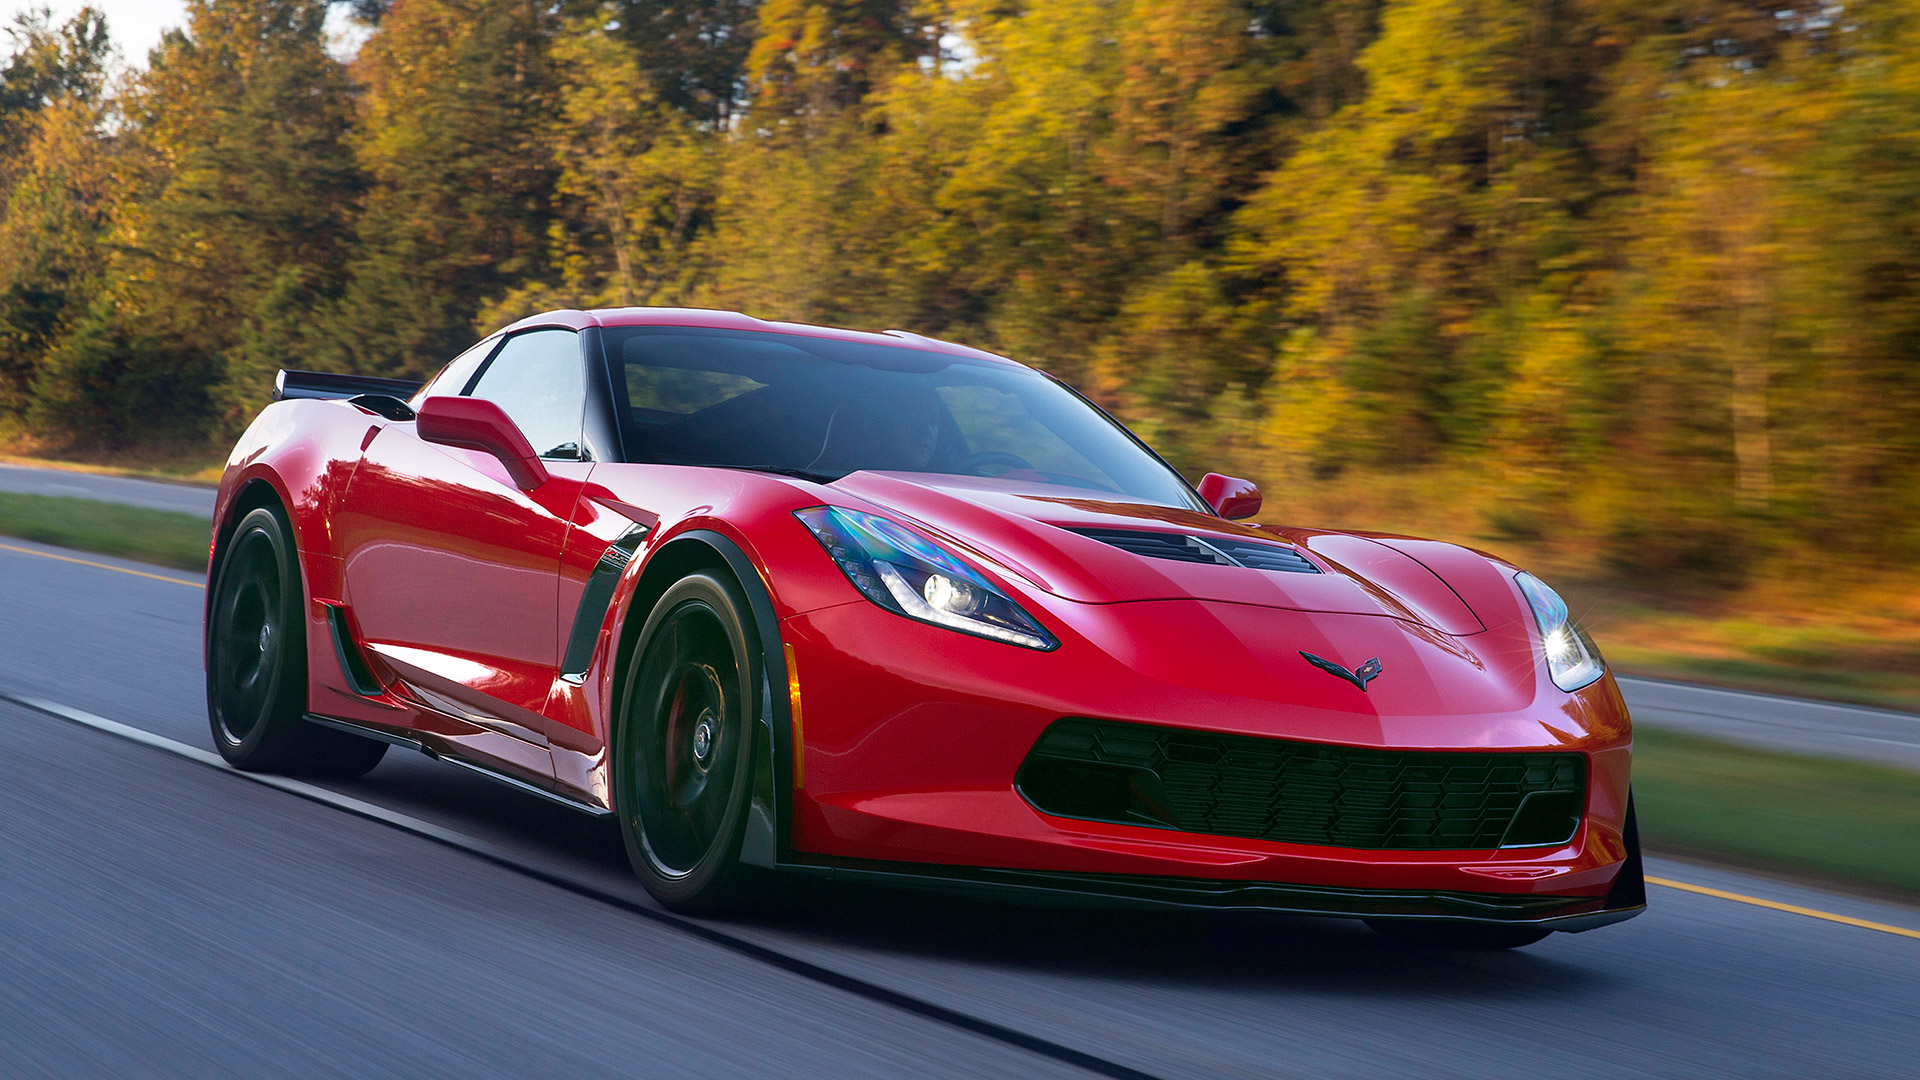 Chevy Offers a Generous Incentive to Current Corvette Owners to